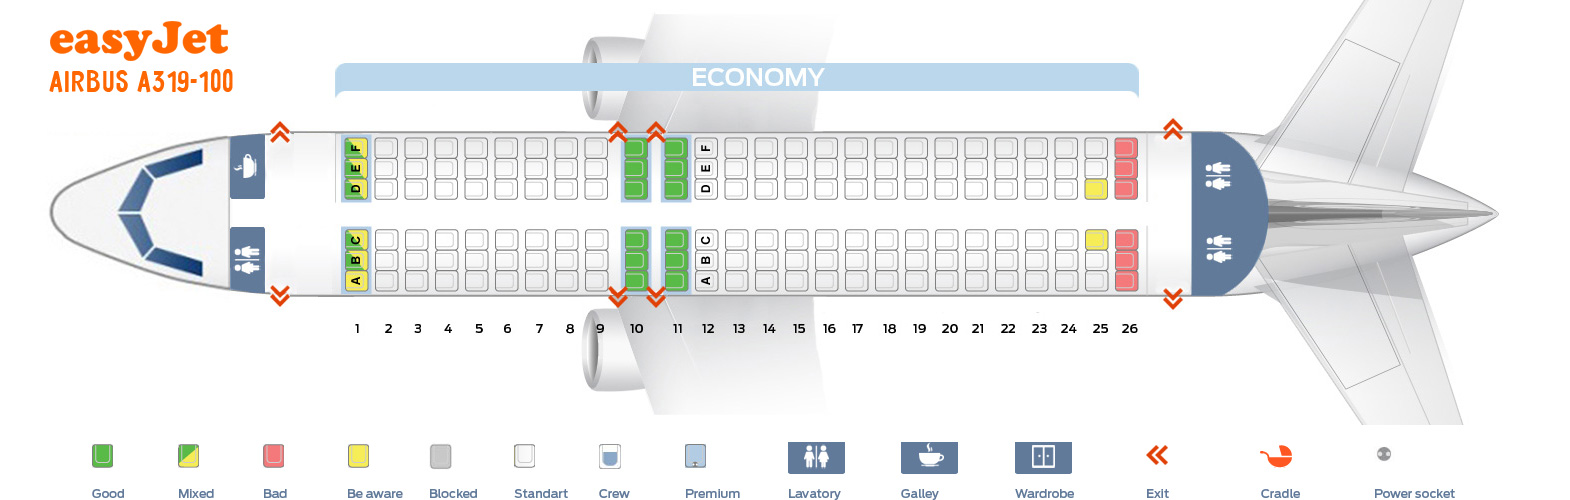 Easyjet Seat Map Seat map Airbus A319 100 Easyjet. Best seats in the plane Easyjet Seat Map